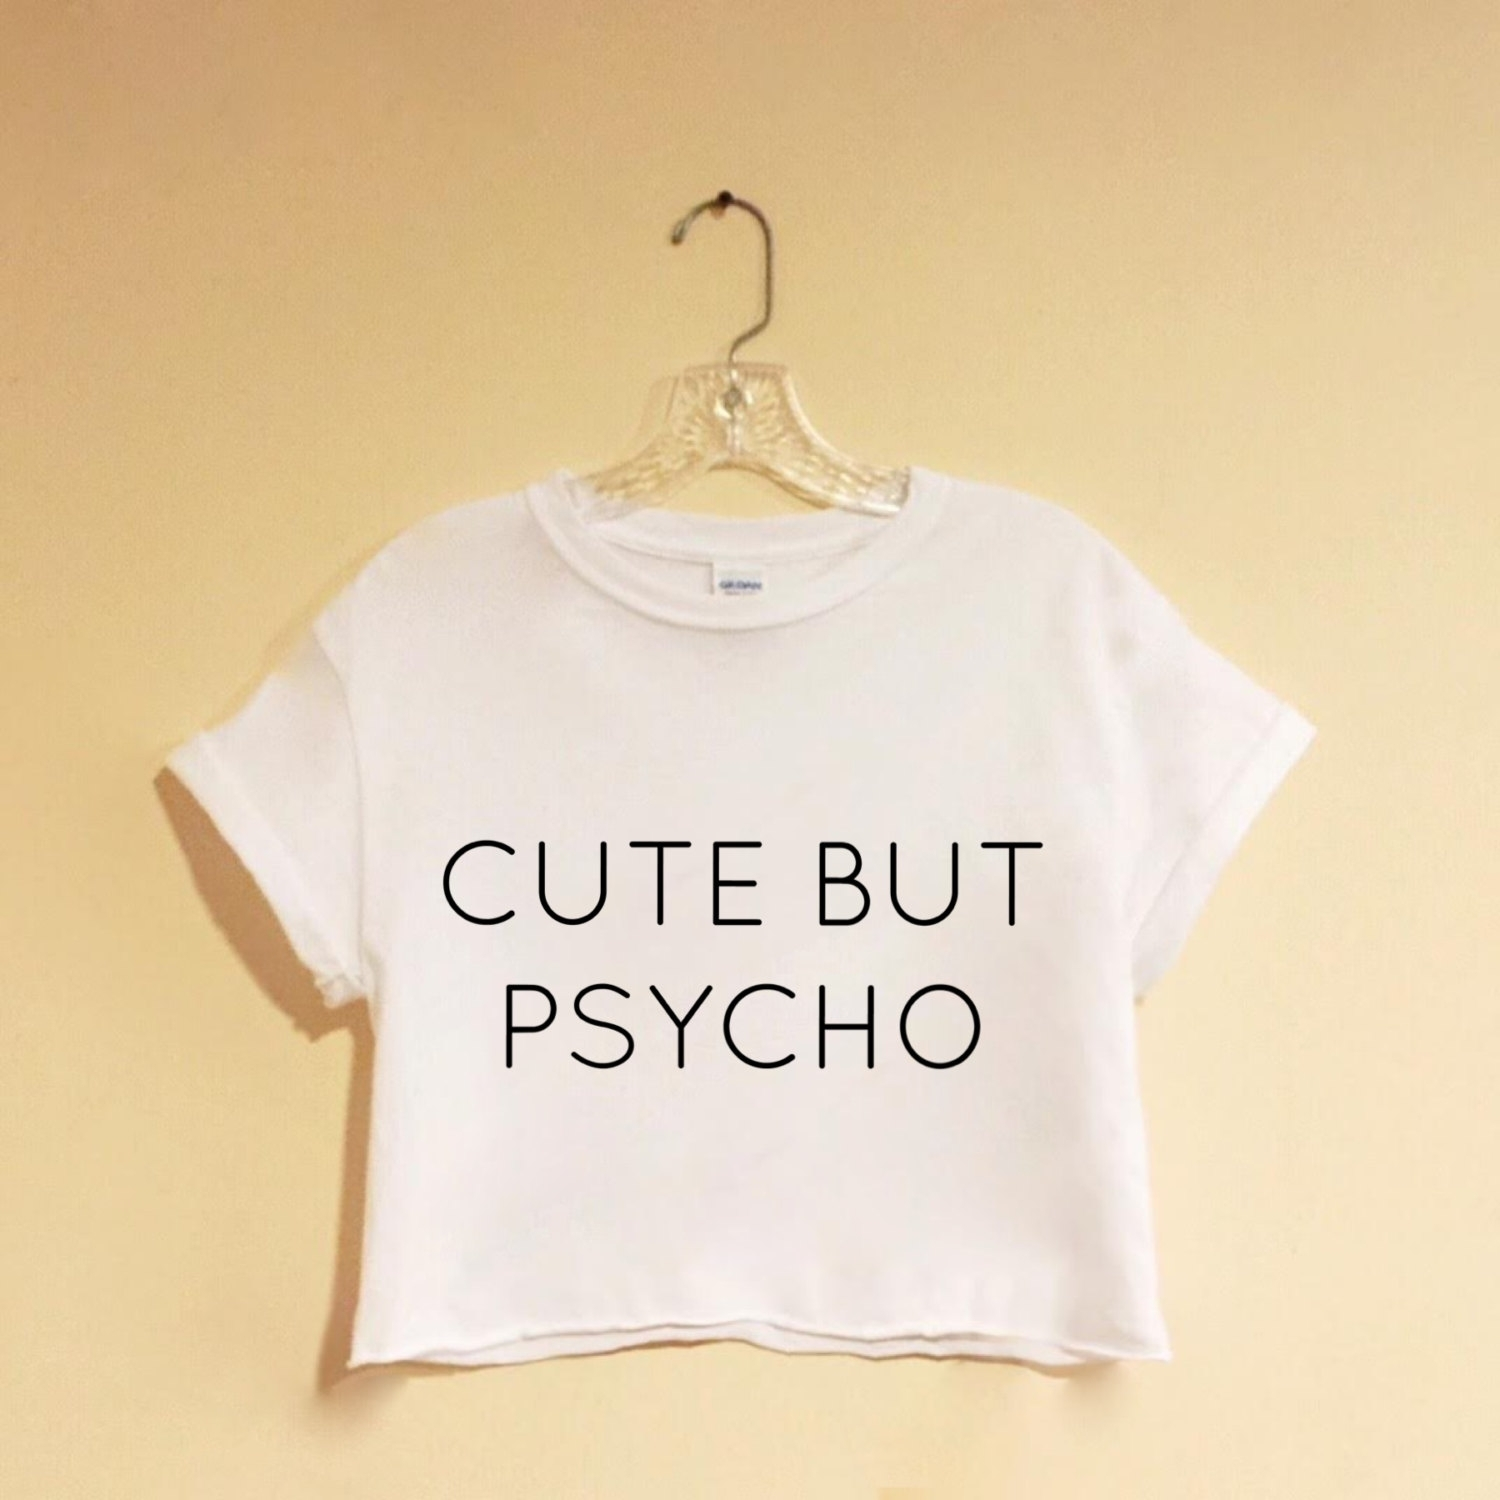 cute but psycho - white crop top - screen printed - hipster - tumblr